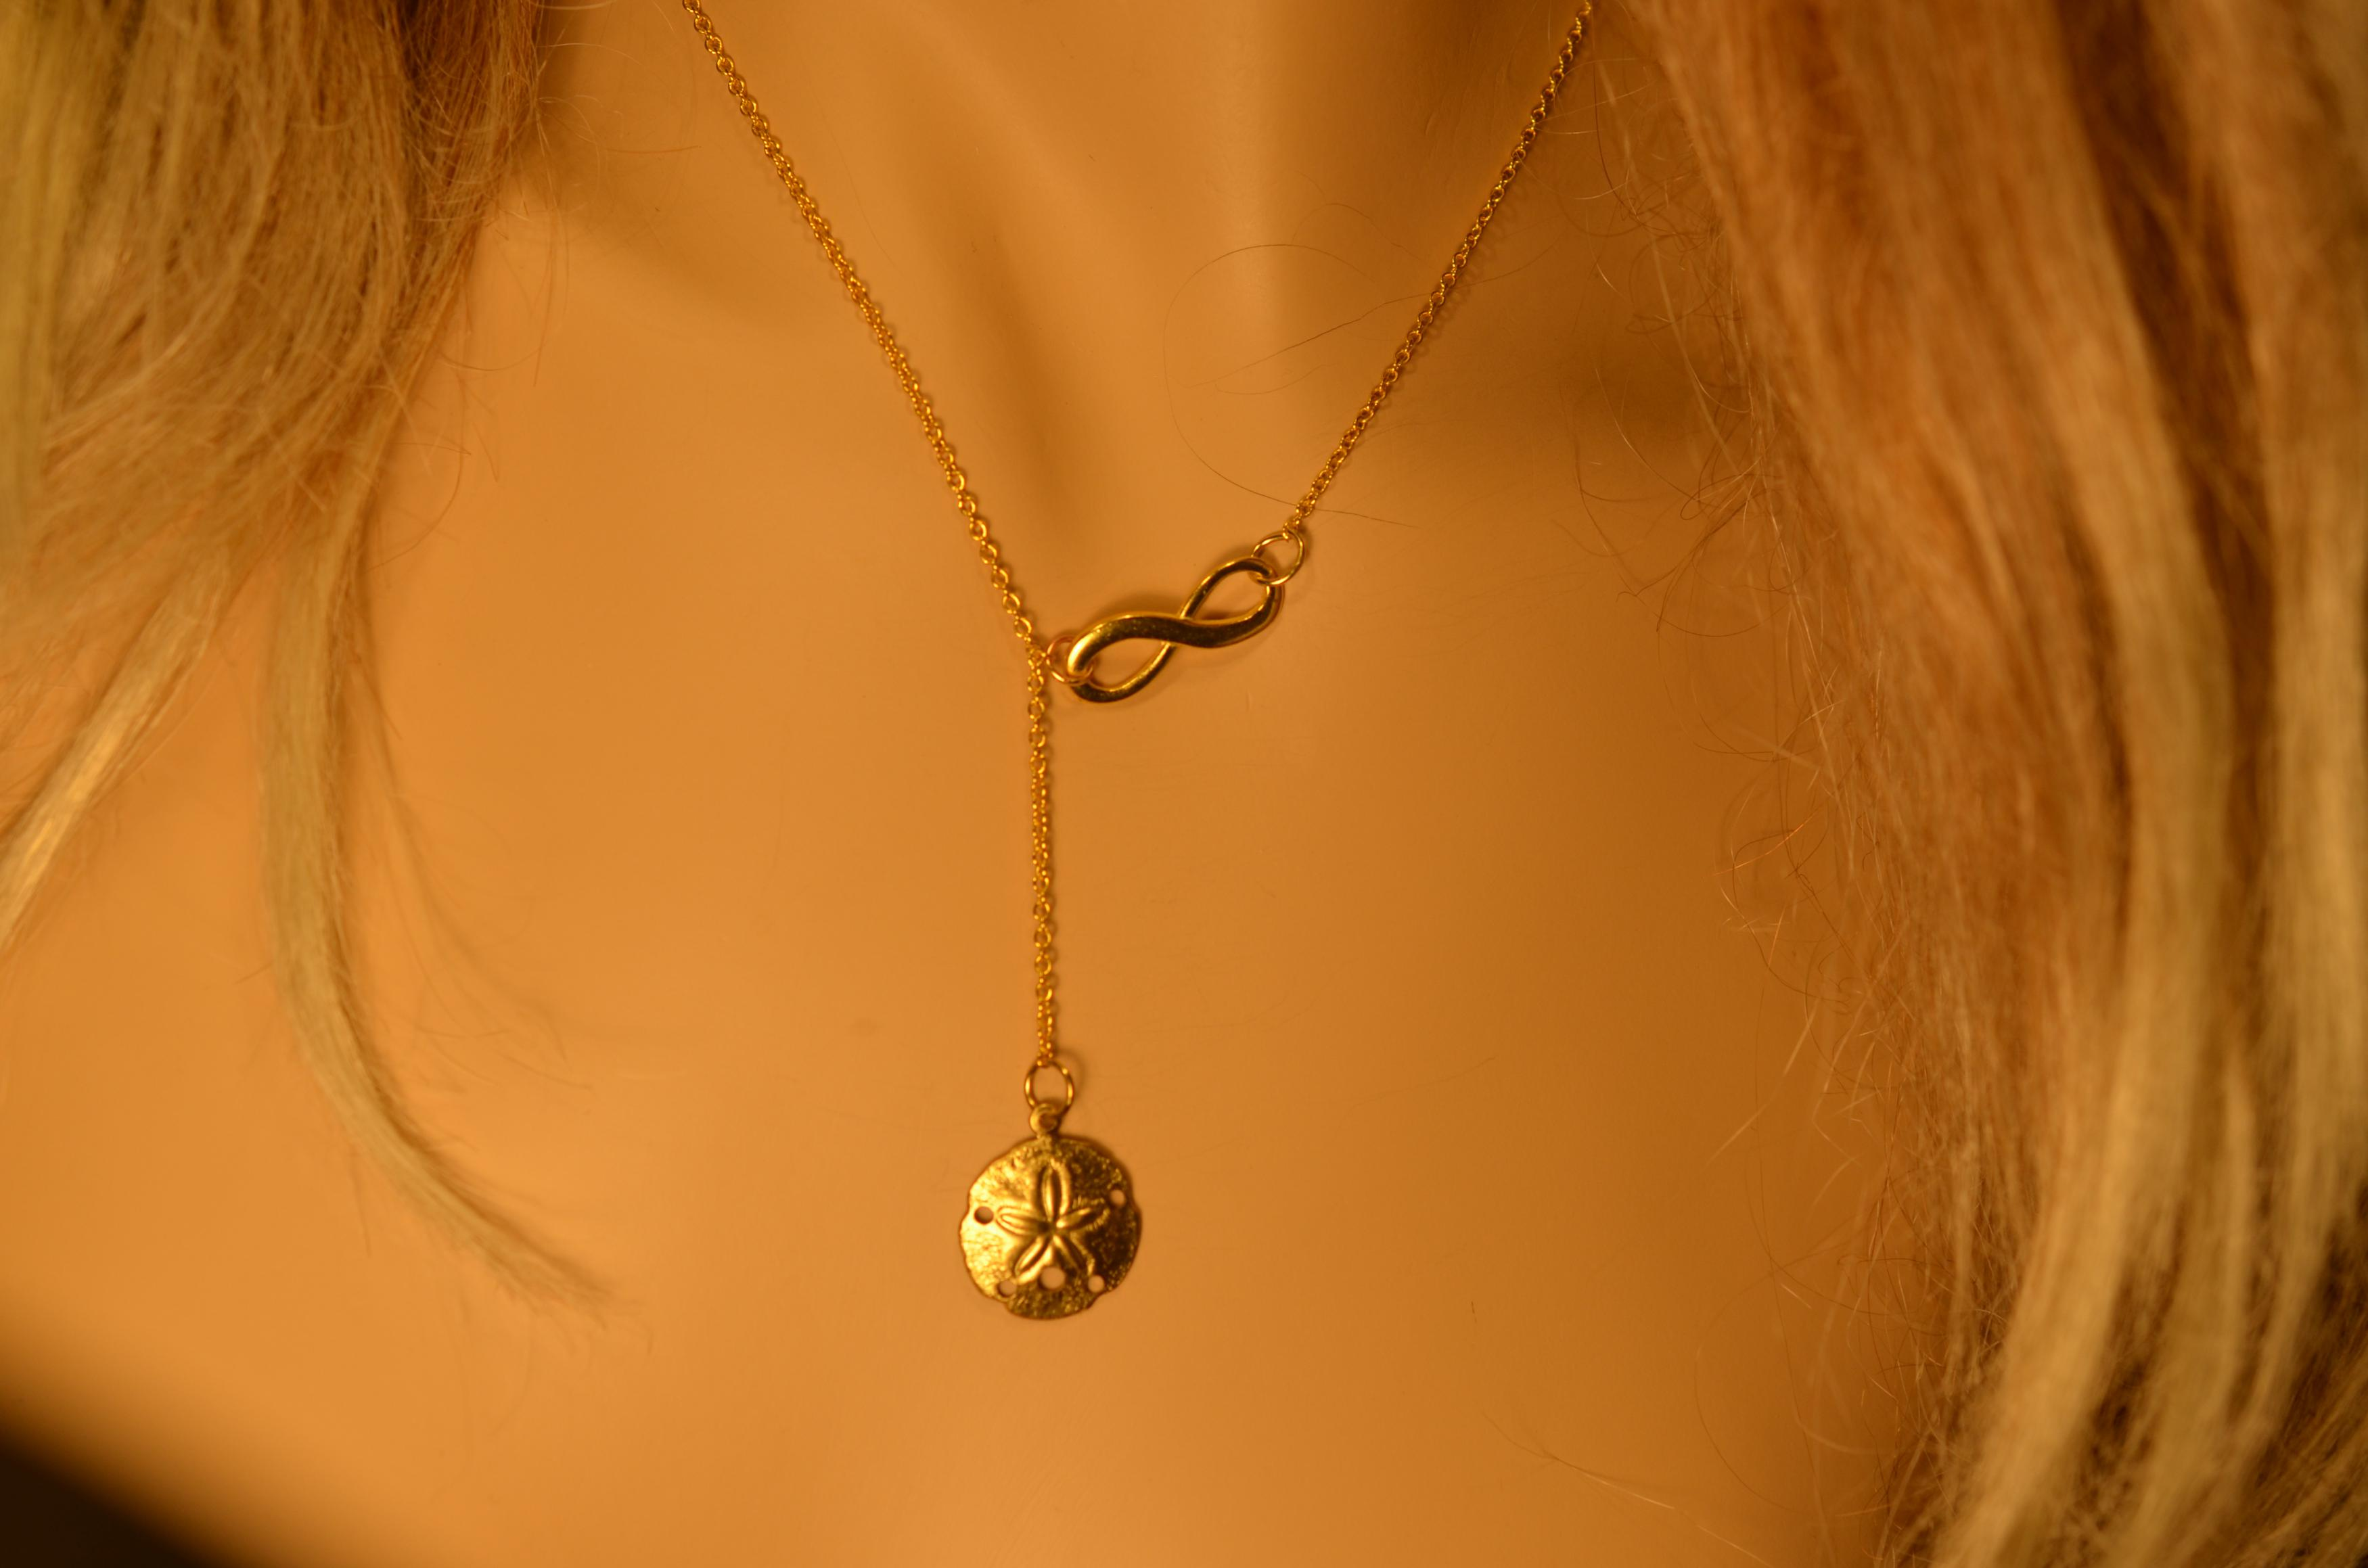 chains bcca amour jp infinity products rose photo necklace gold